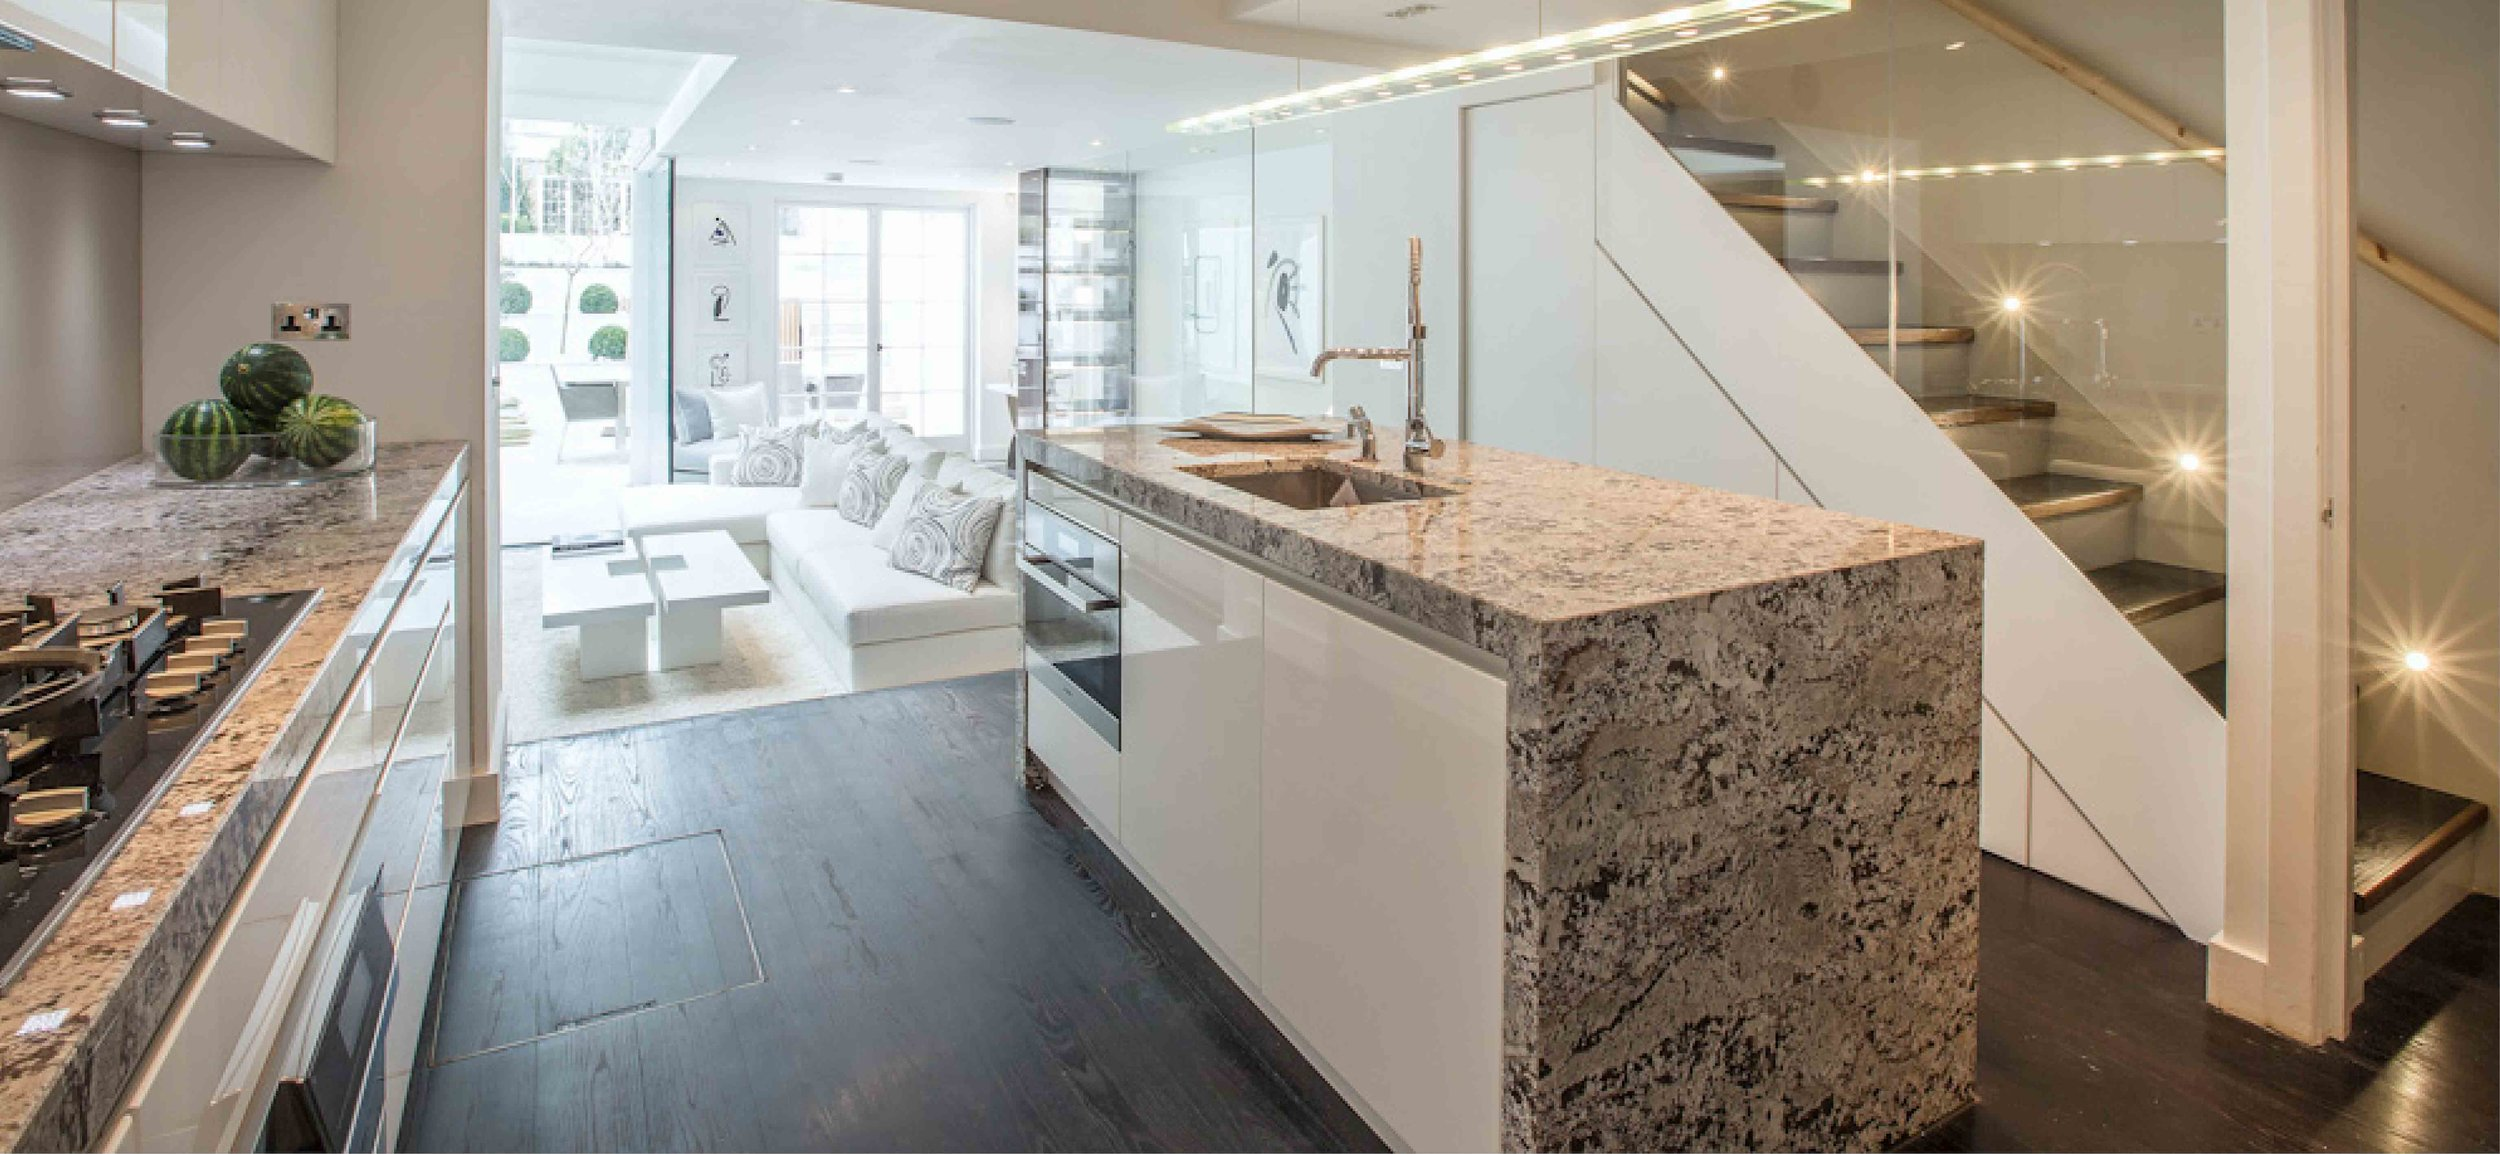 ___ marble worktops finish this modern kitchen. The island contains the oven and sink. The space leads into the new extension creating the main living space for the property,